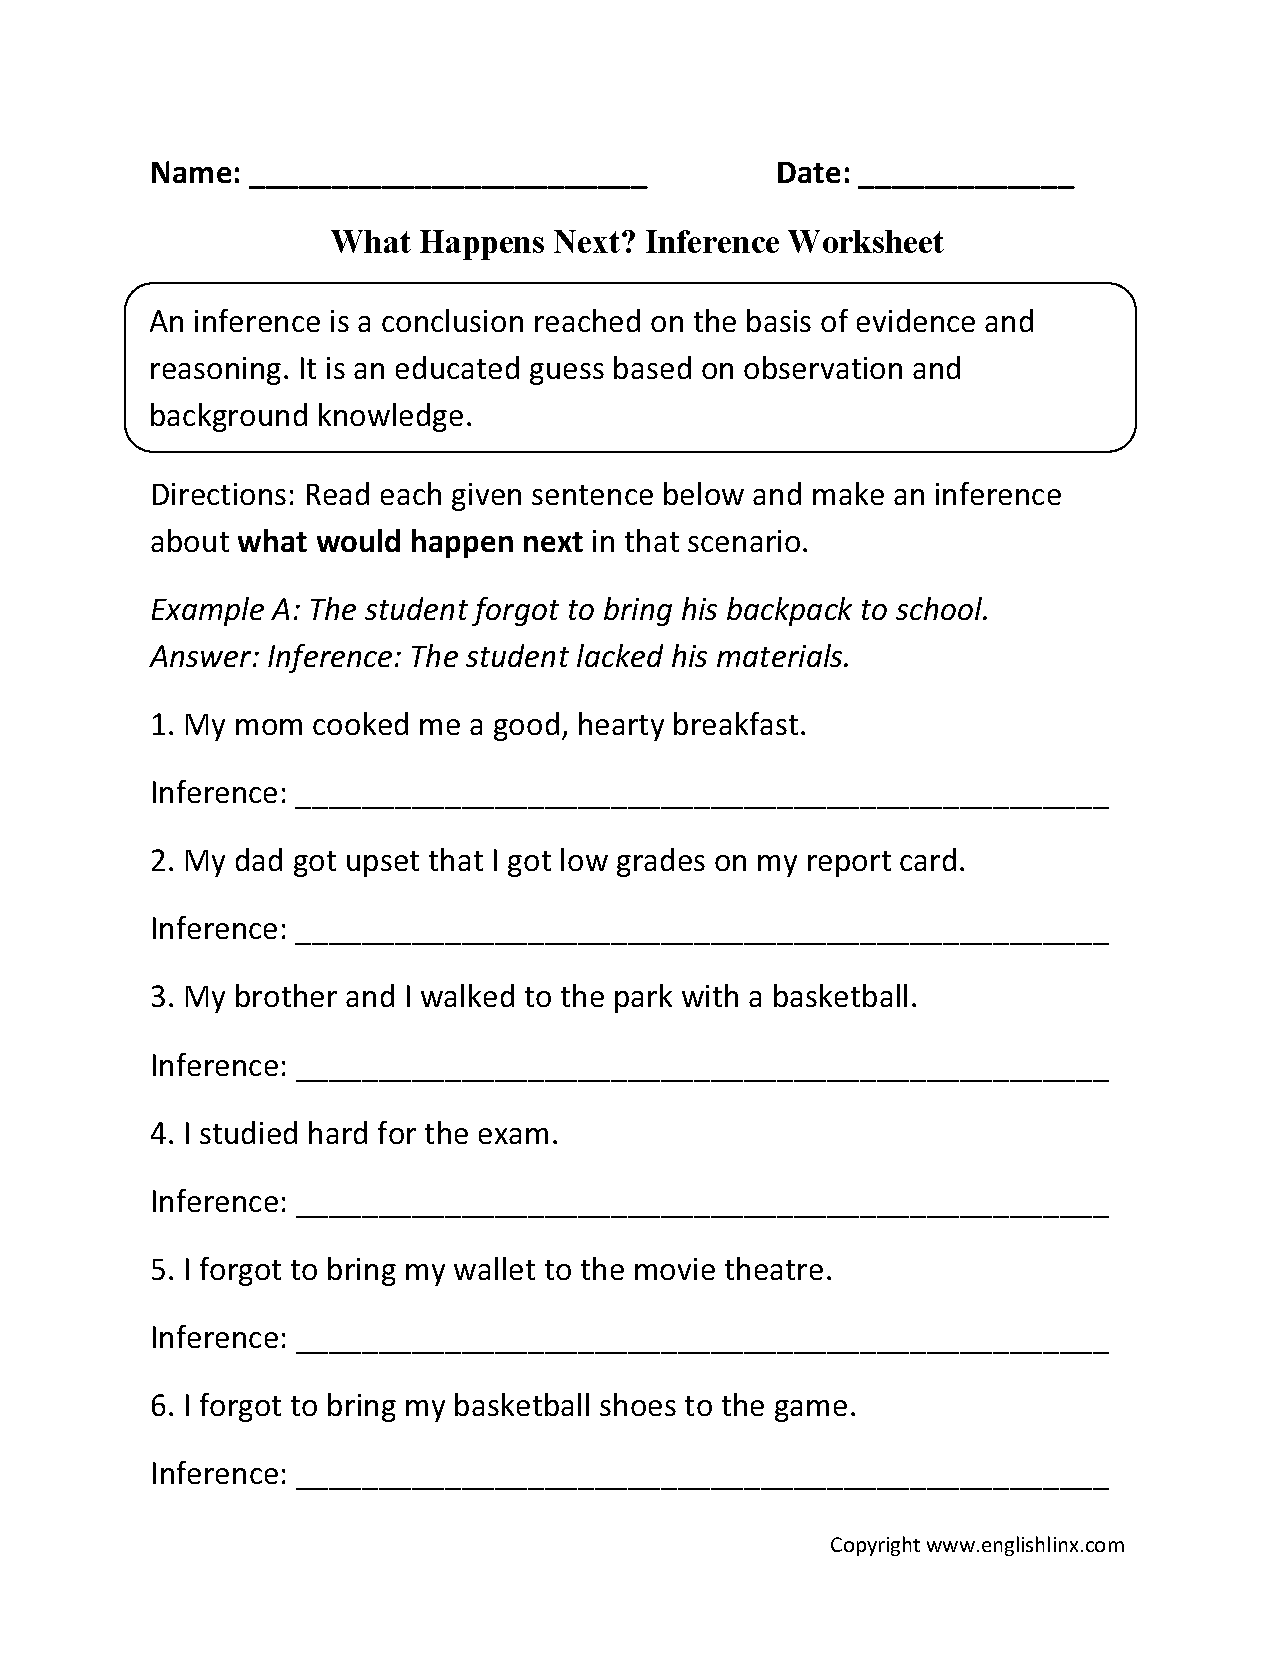 What Happens Next Inference Worksheets Englishlinx Com Board